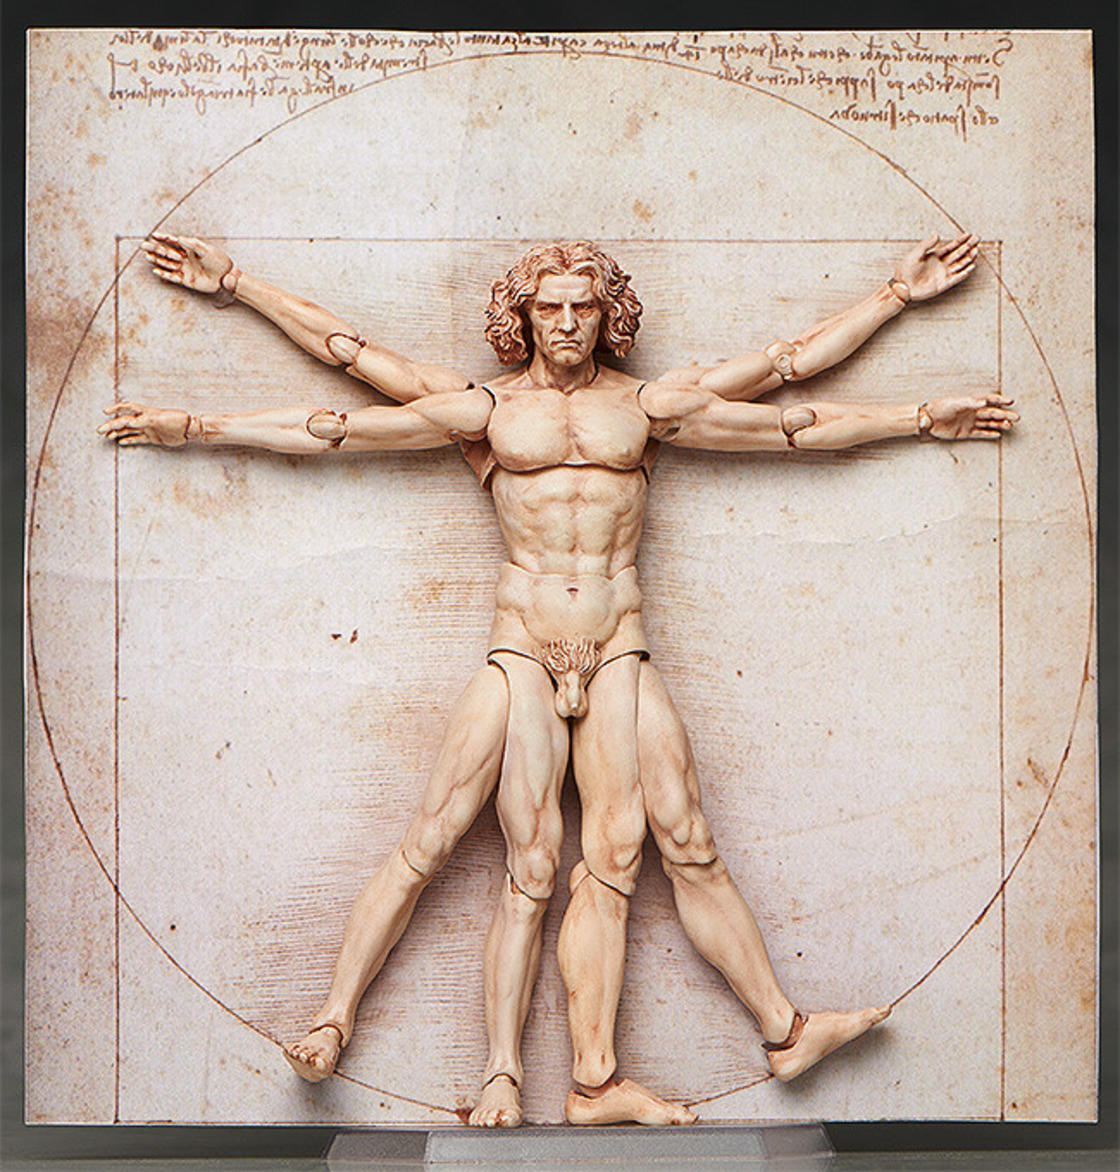 Vitruvian-Man-Action-Figure-6.jpg